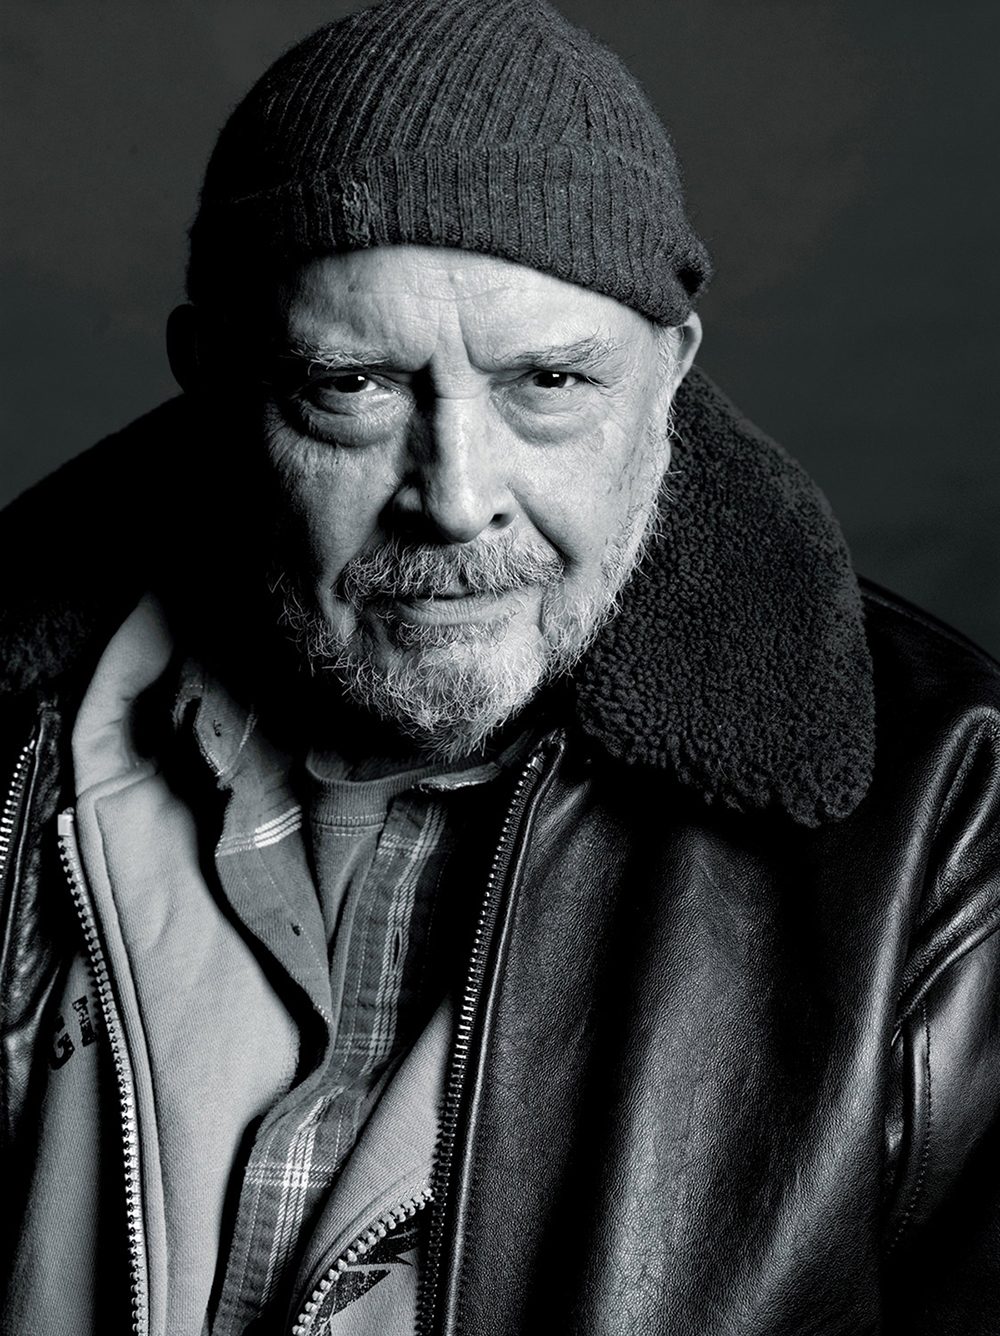 david-bailey-stephen-perry-photography.jpg